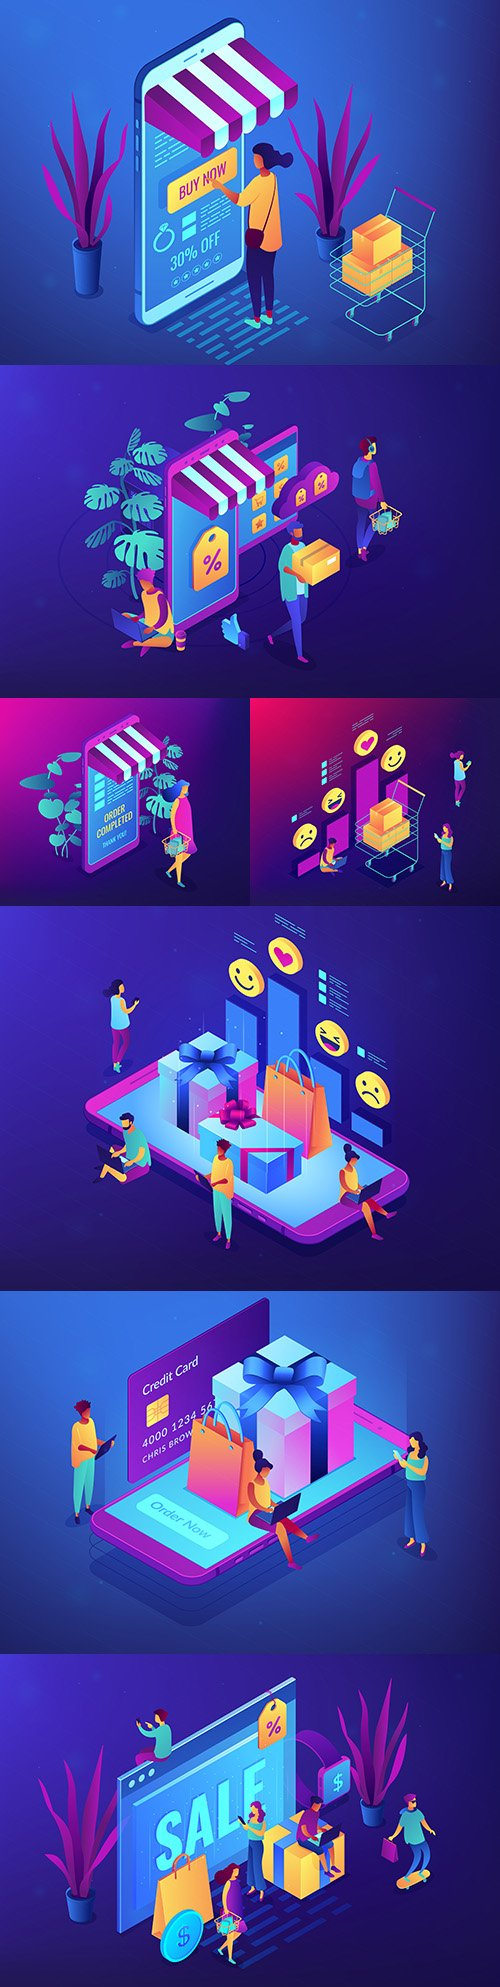 Online gift and shopping isometric 3d concept illustrations